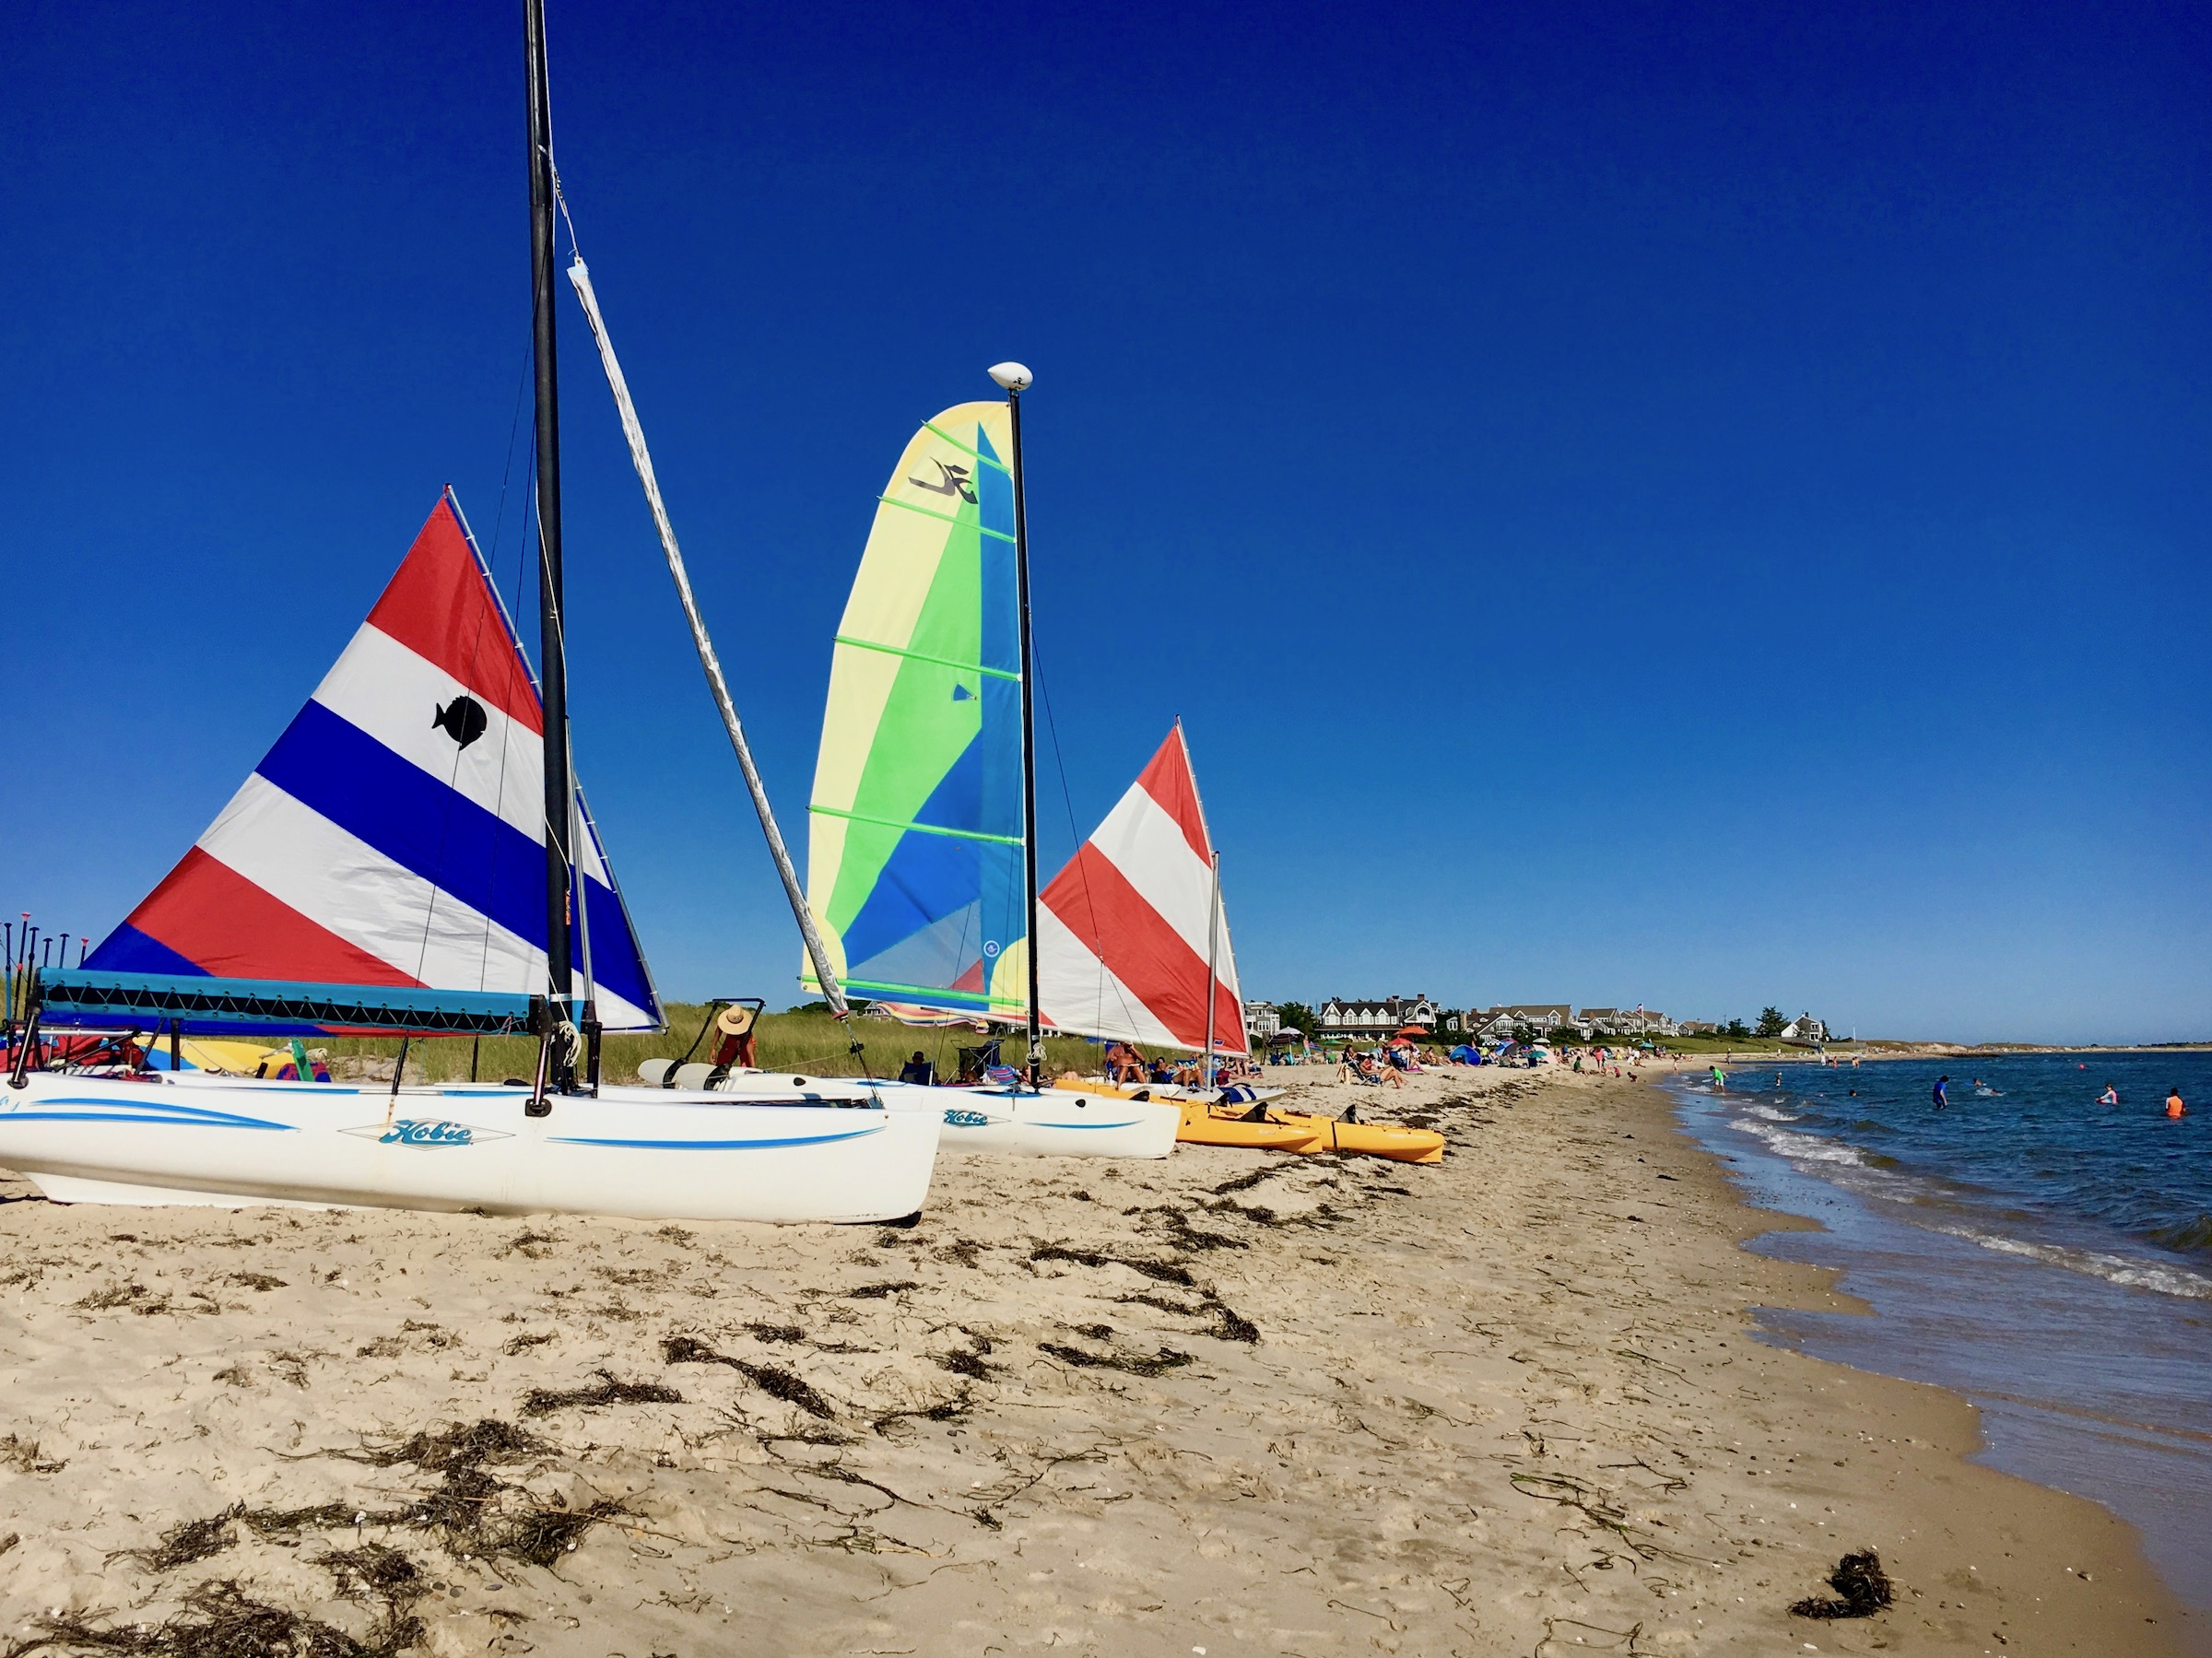 hobie-wave-sailboats-chatham-ma-rentals-lessons-tours